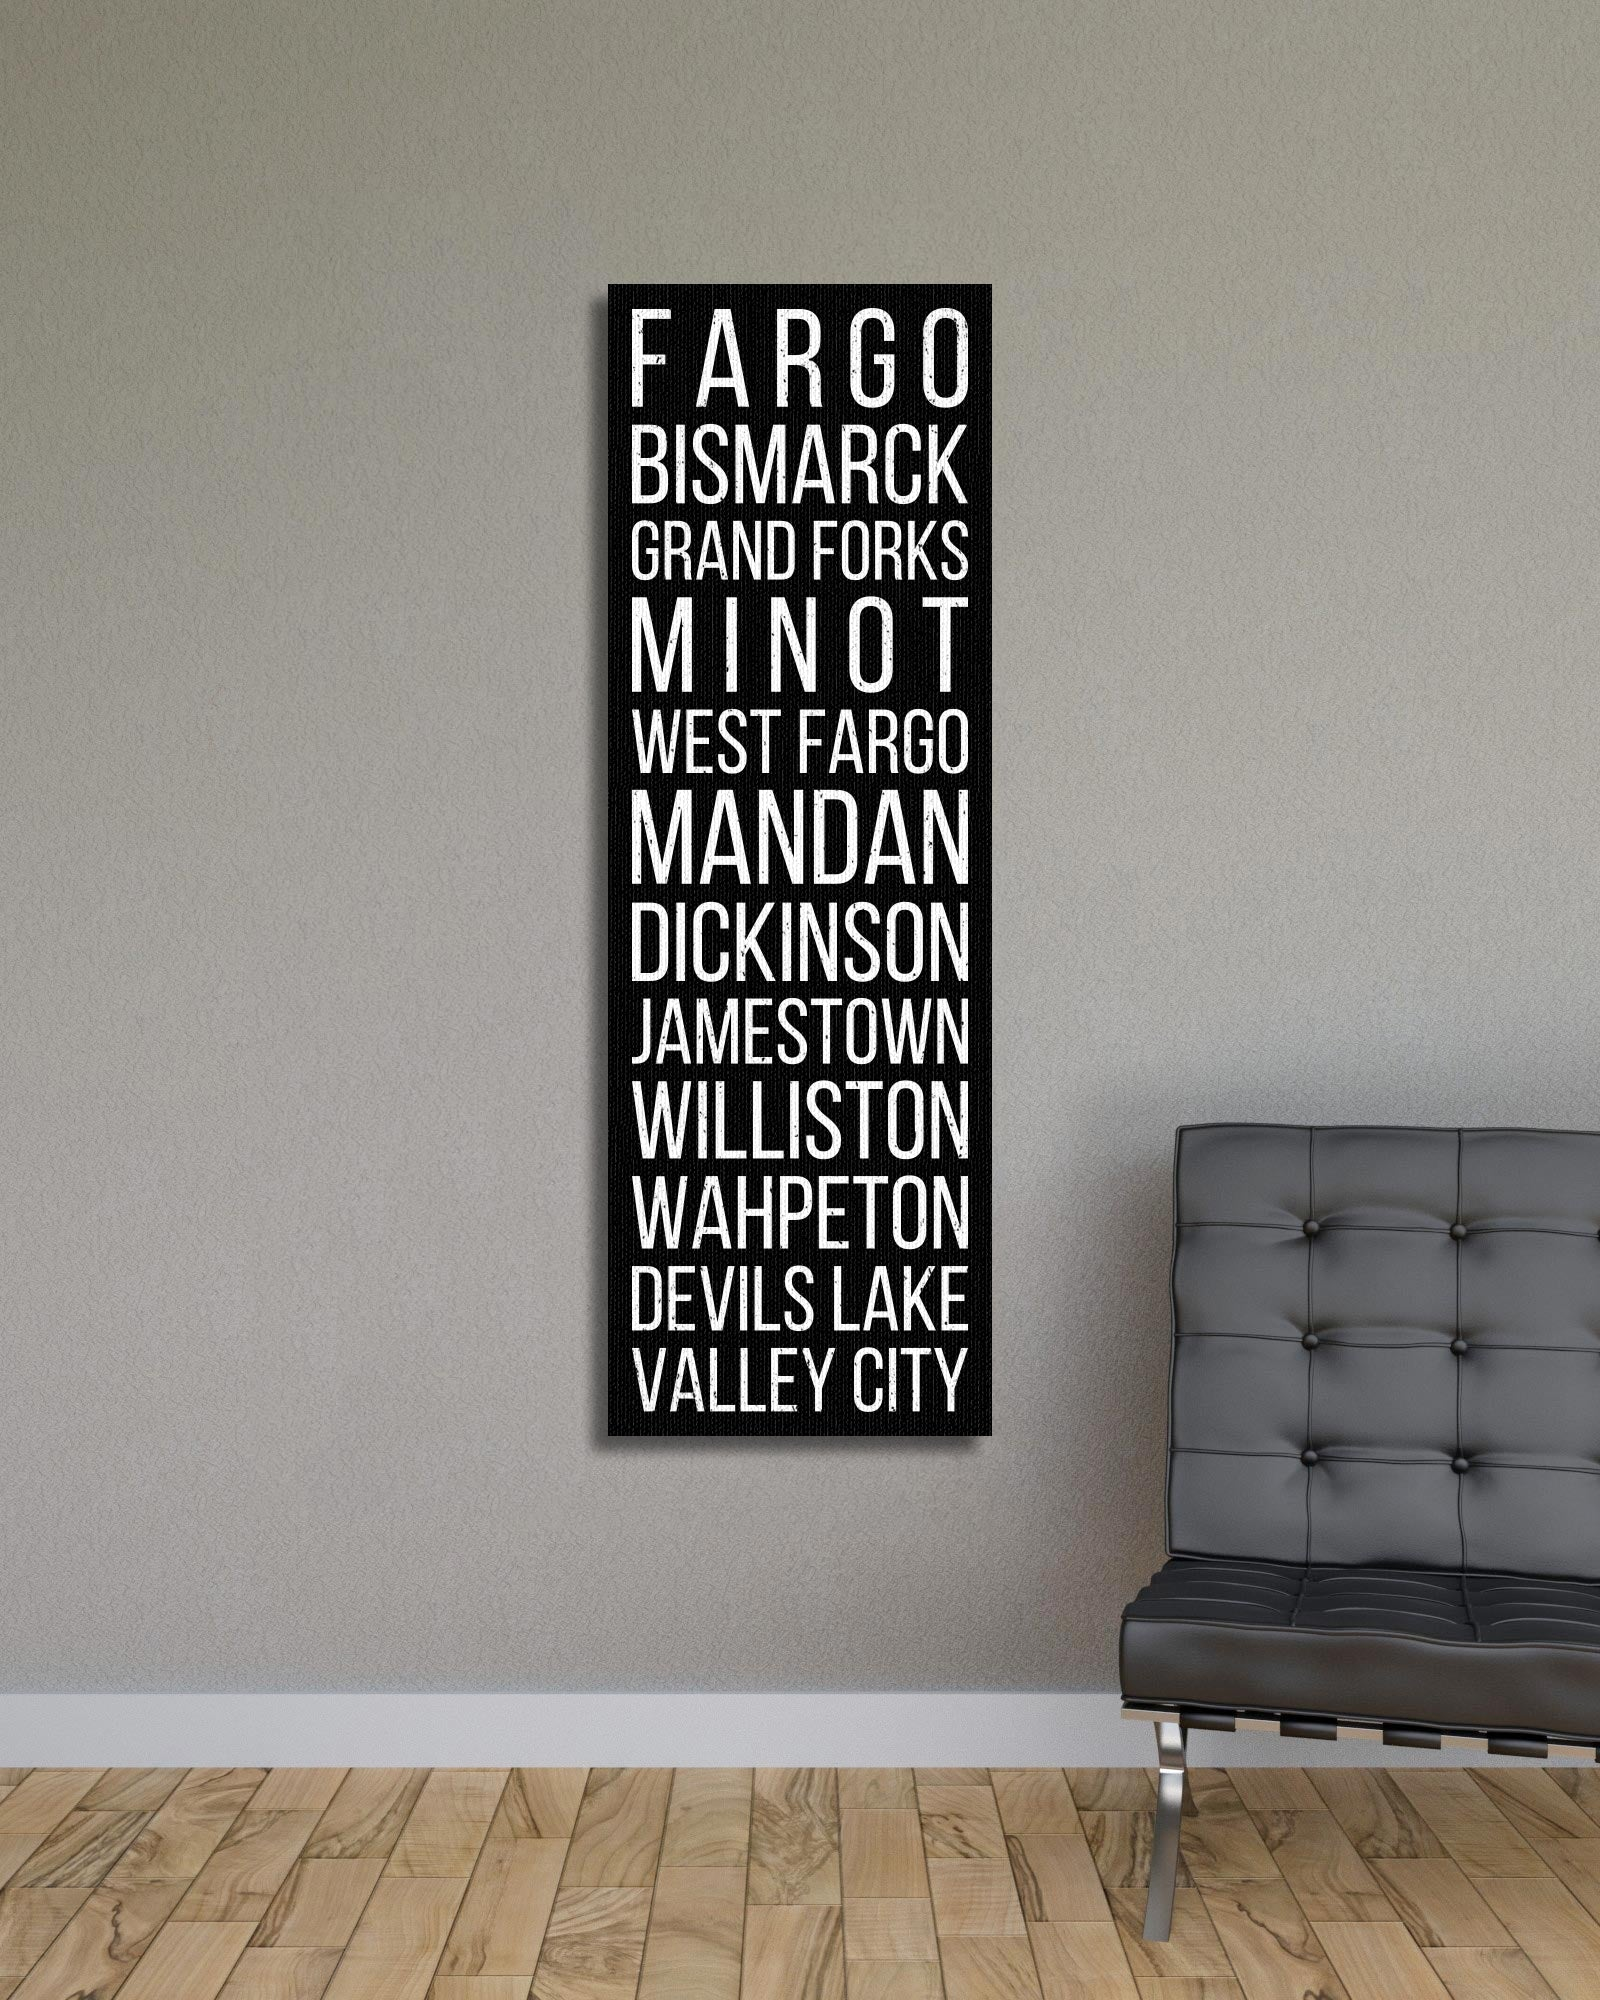 North Dakota Fargo Bismarck Grand Forks Bus Scroll Subway Canvas Print